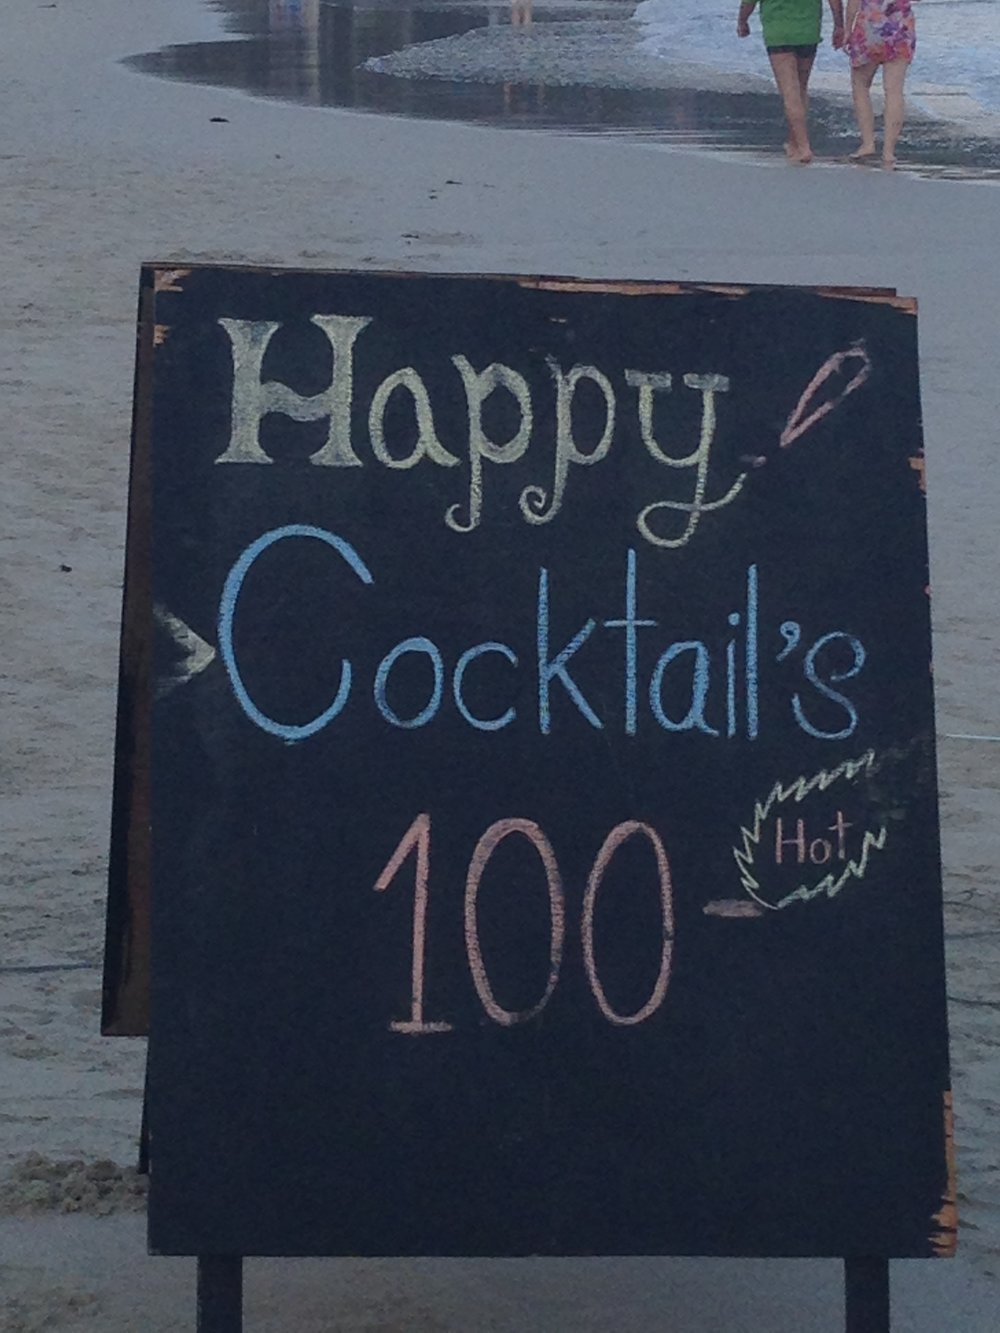 One of many signs that made me love Thailand even more.